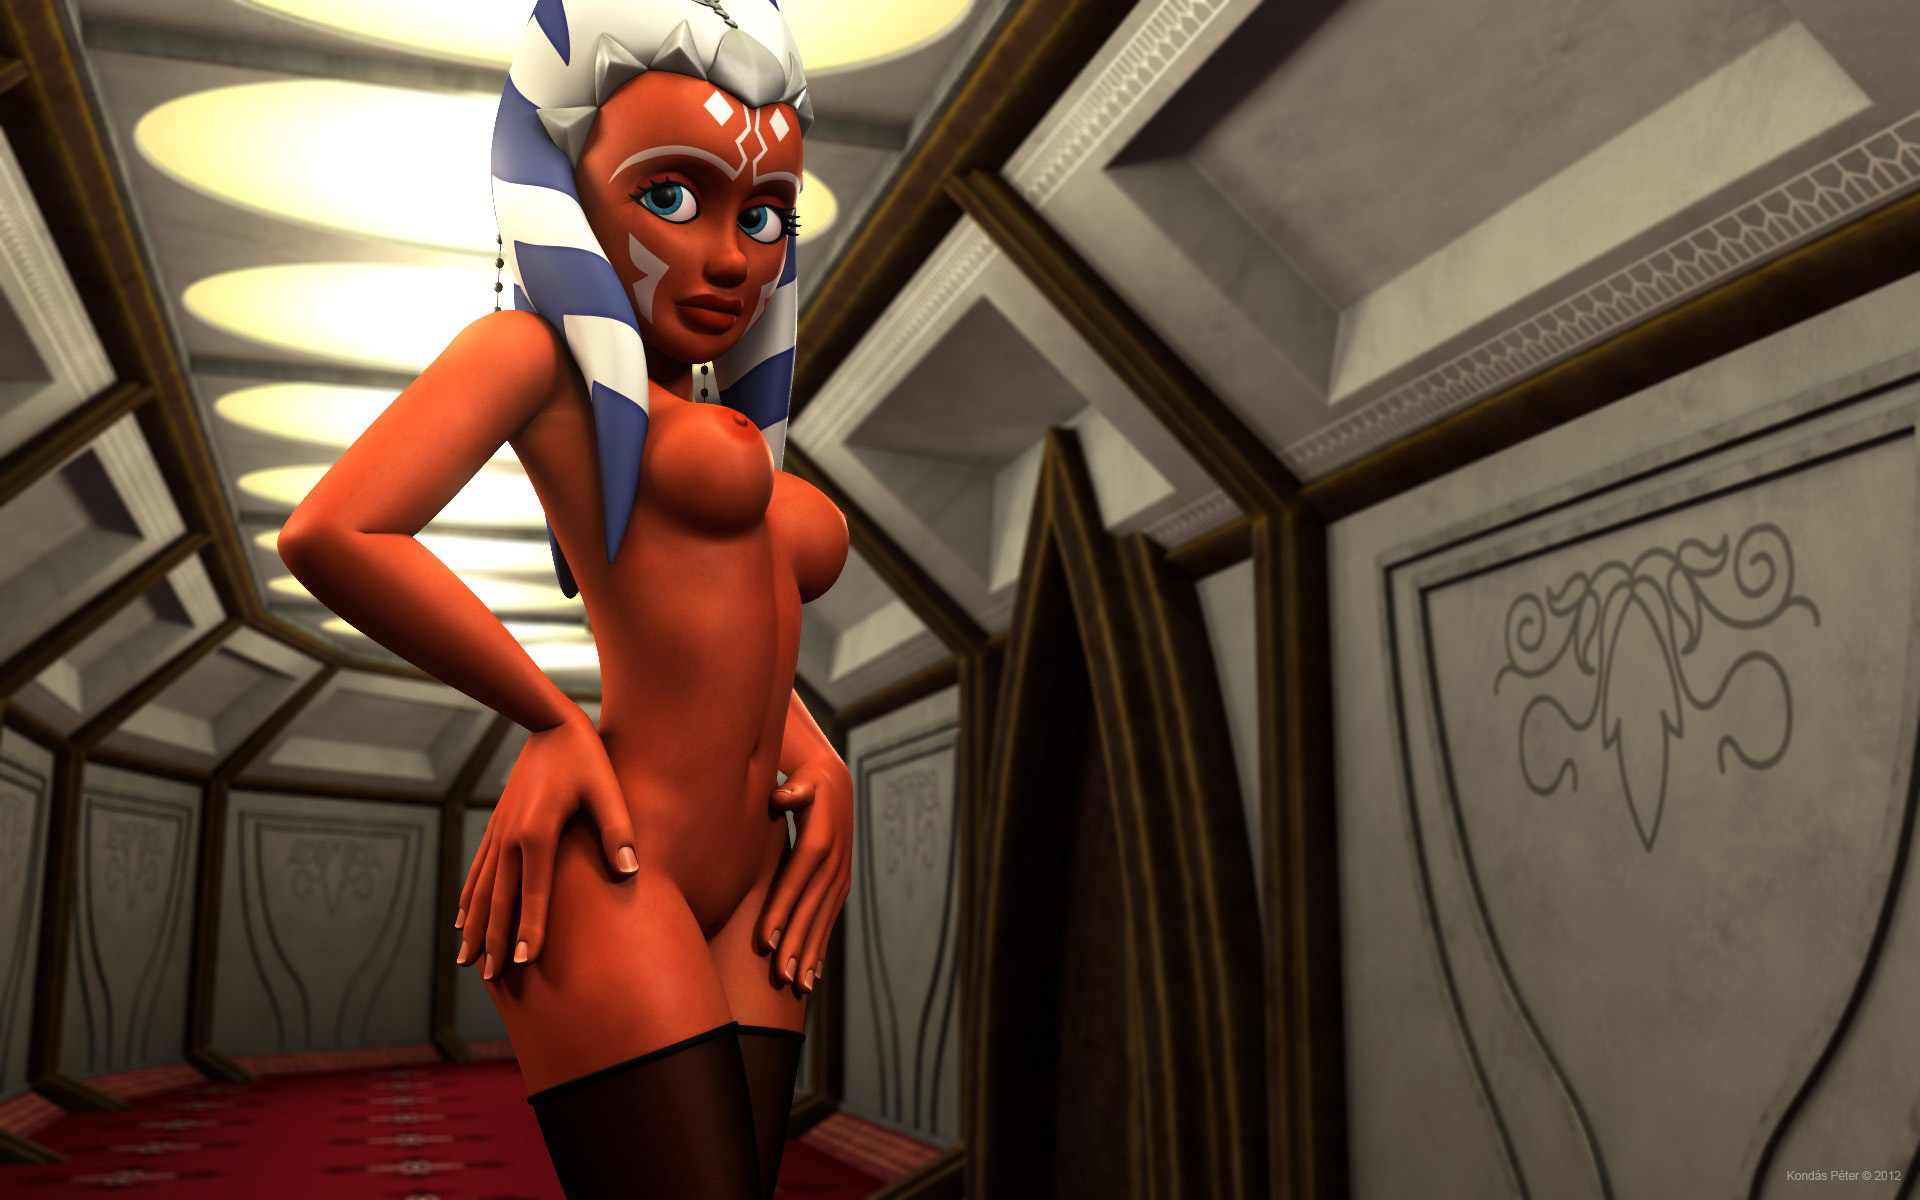 Star wars the clone wars naked anime picture